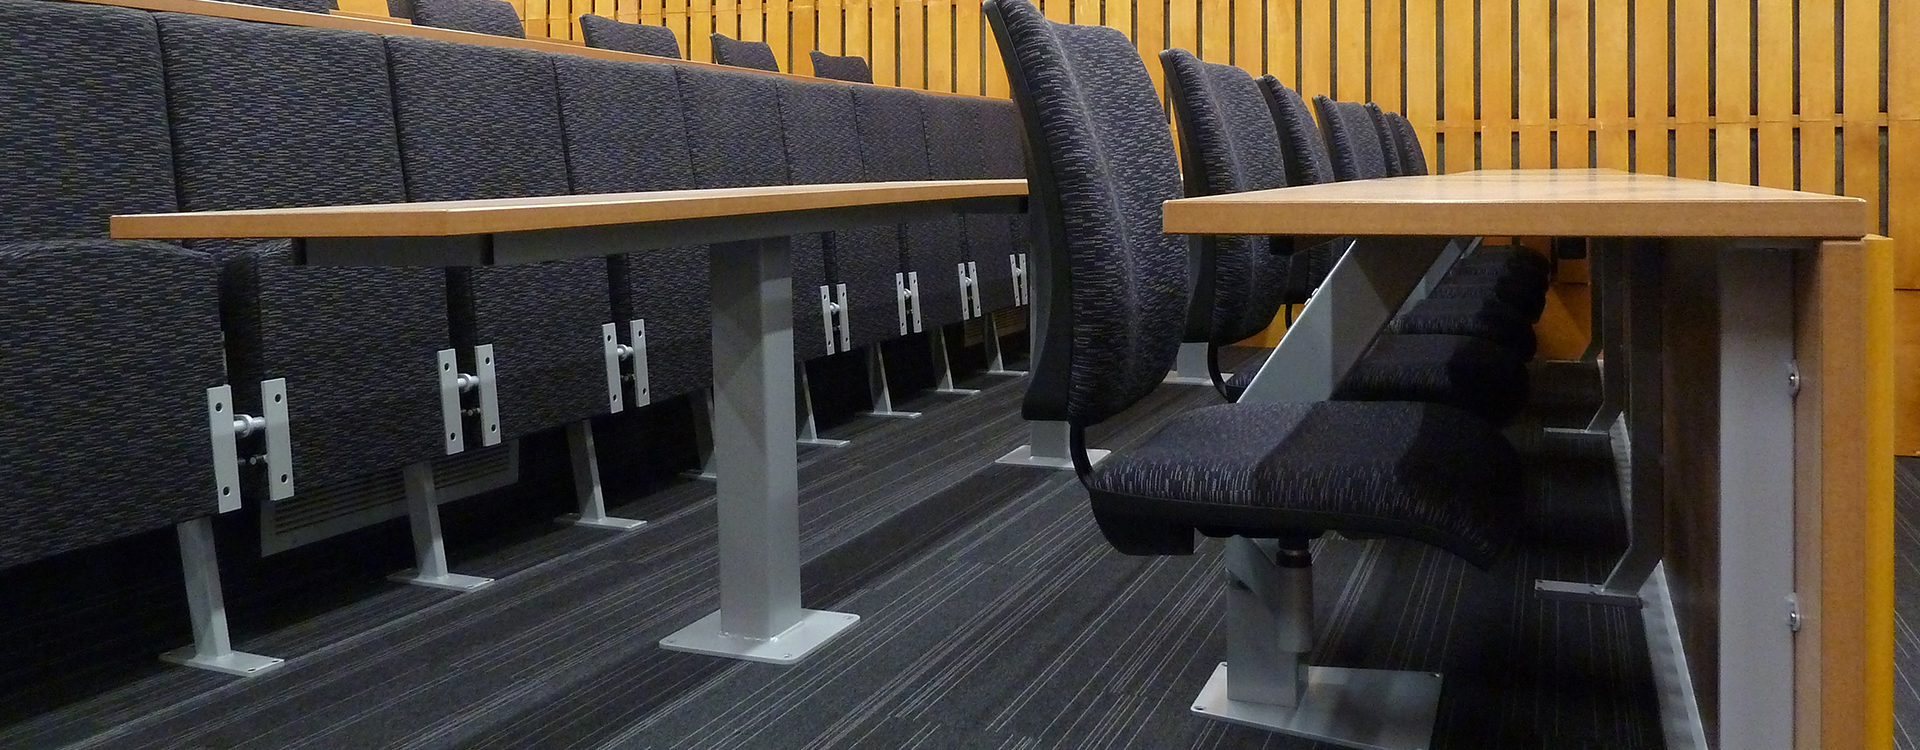 University of Hull Lecture Theatre Seating